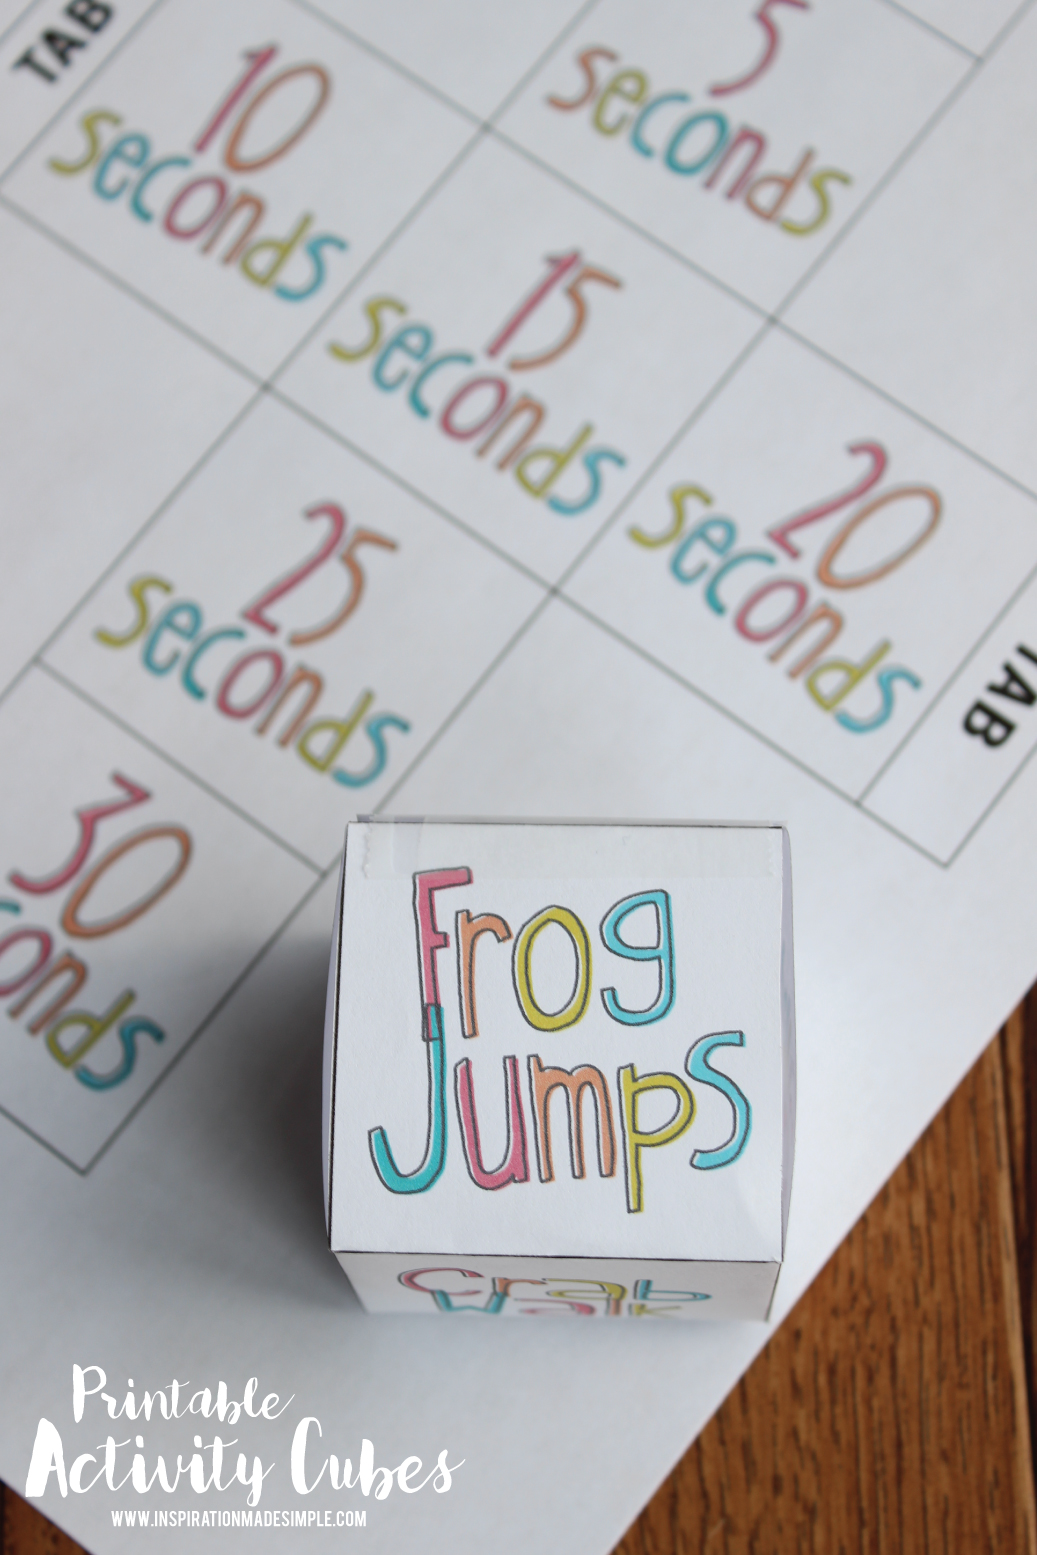 Printable Activity Cubes to get kids up and moving!